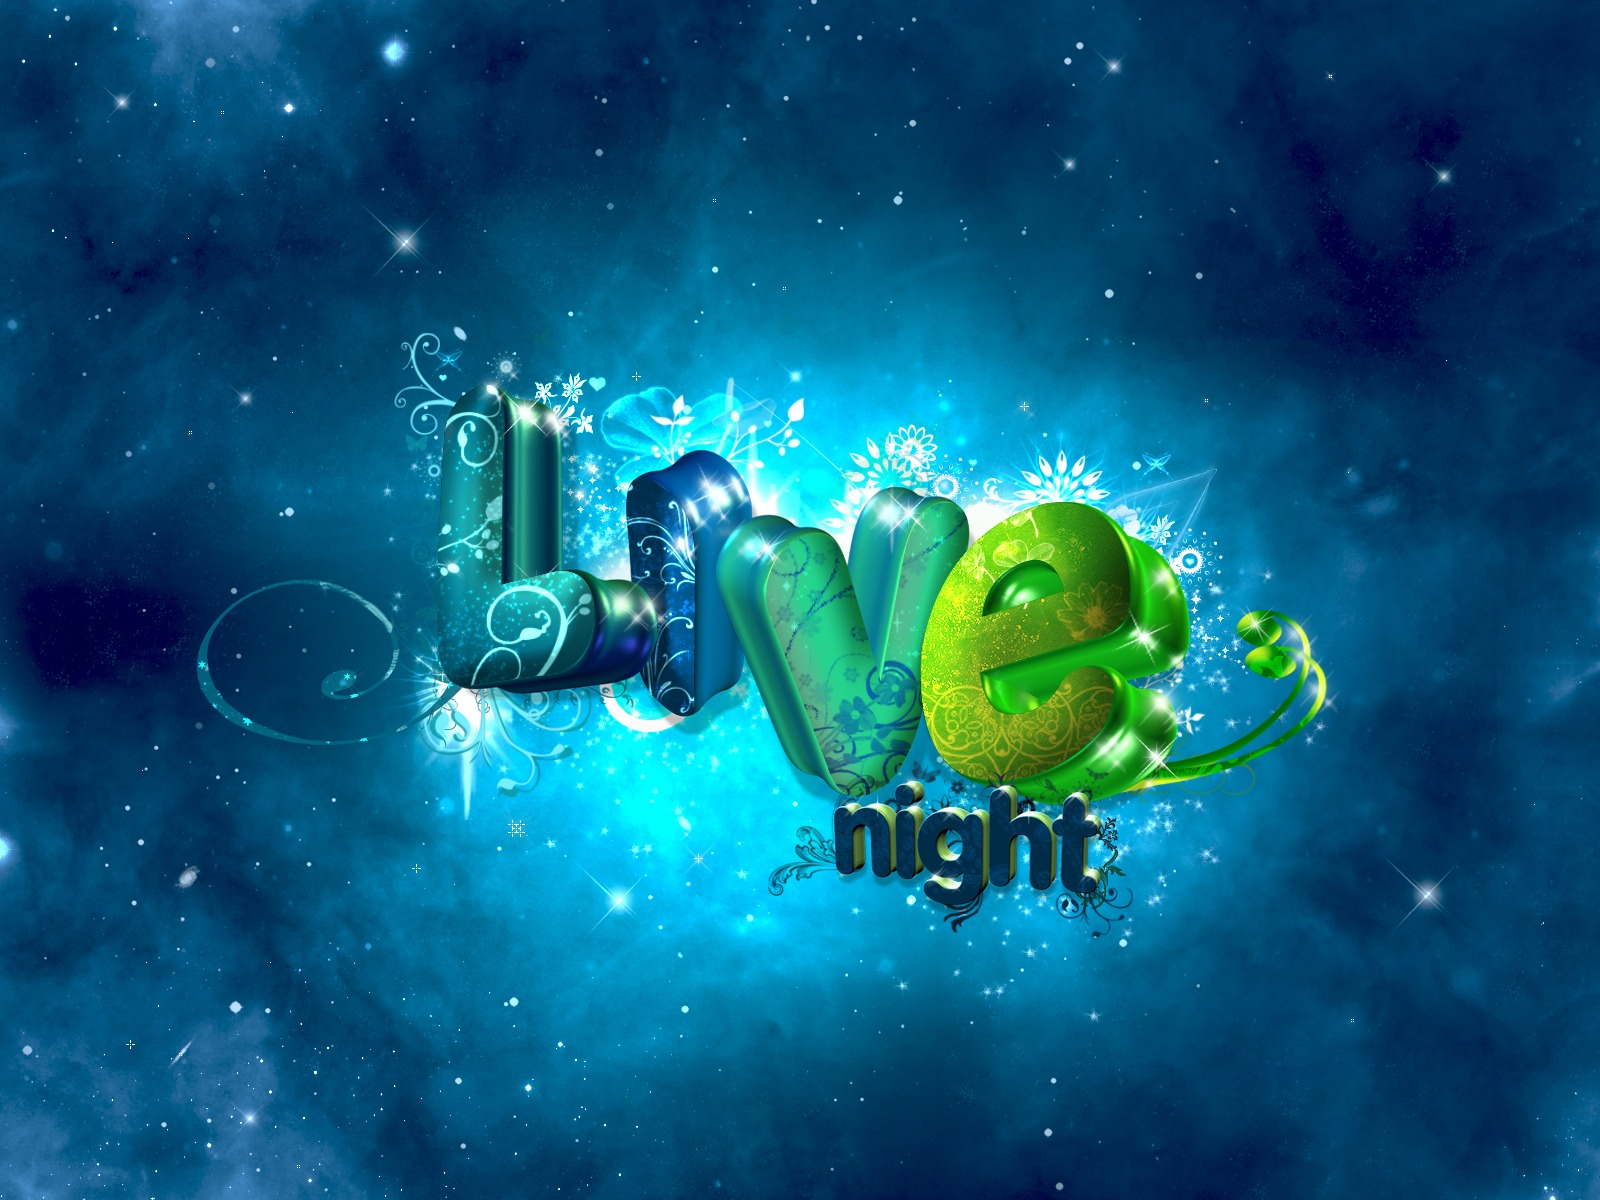 Live 3d wallpaper wallpapers for free download about 3407 live night wallpaper abstract 3d voltagebd Gallery